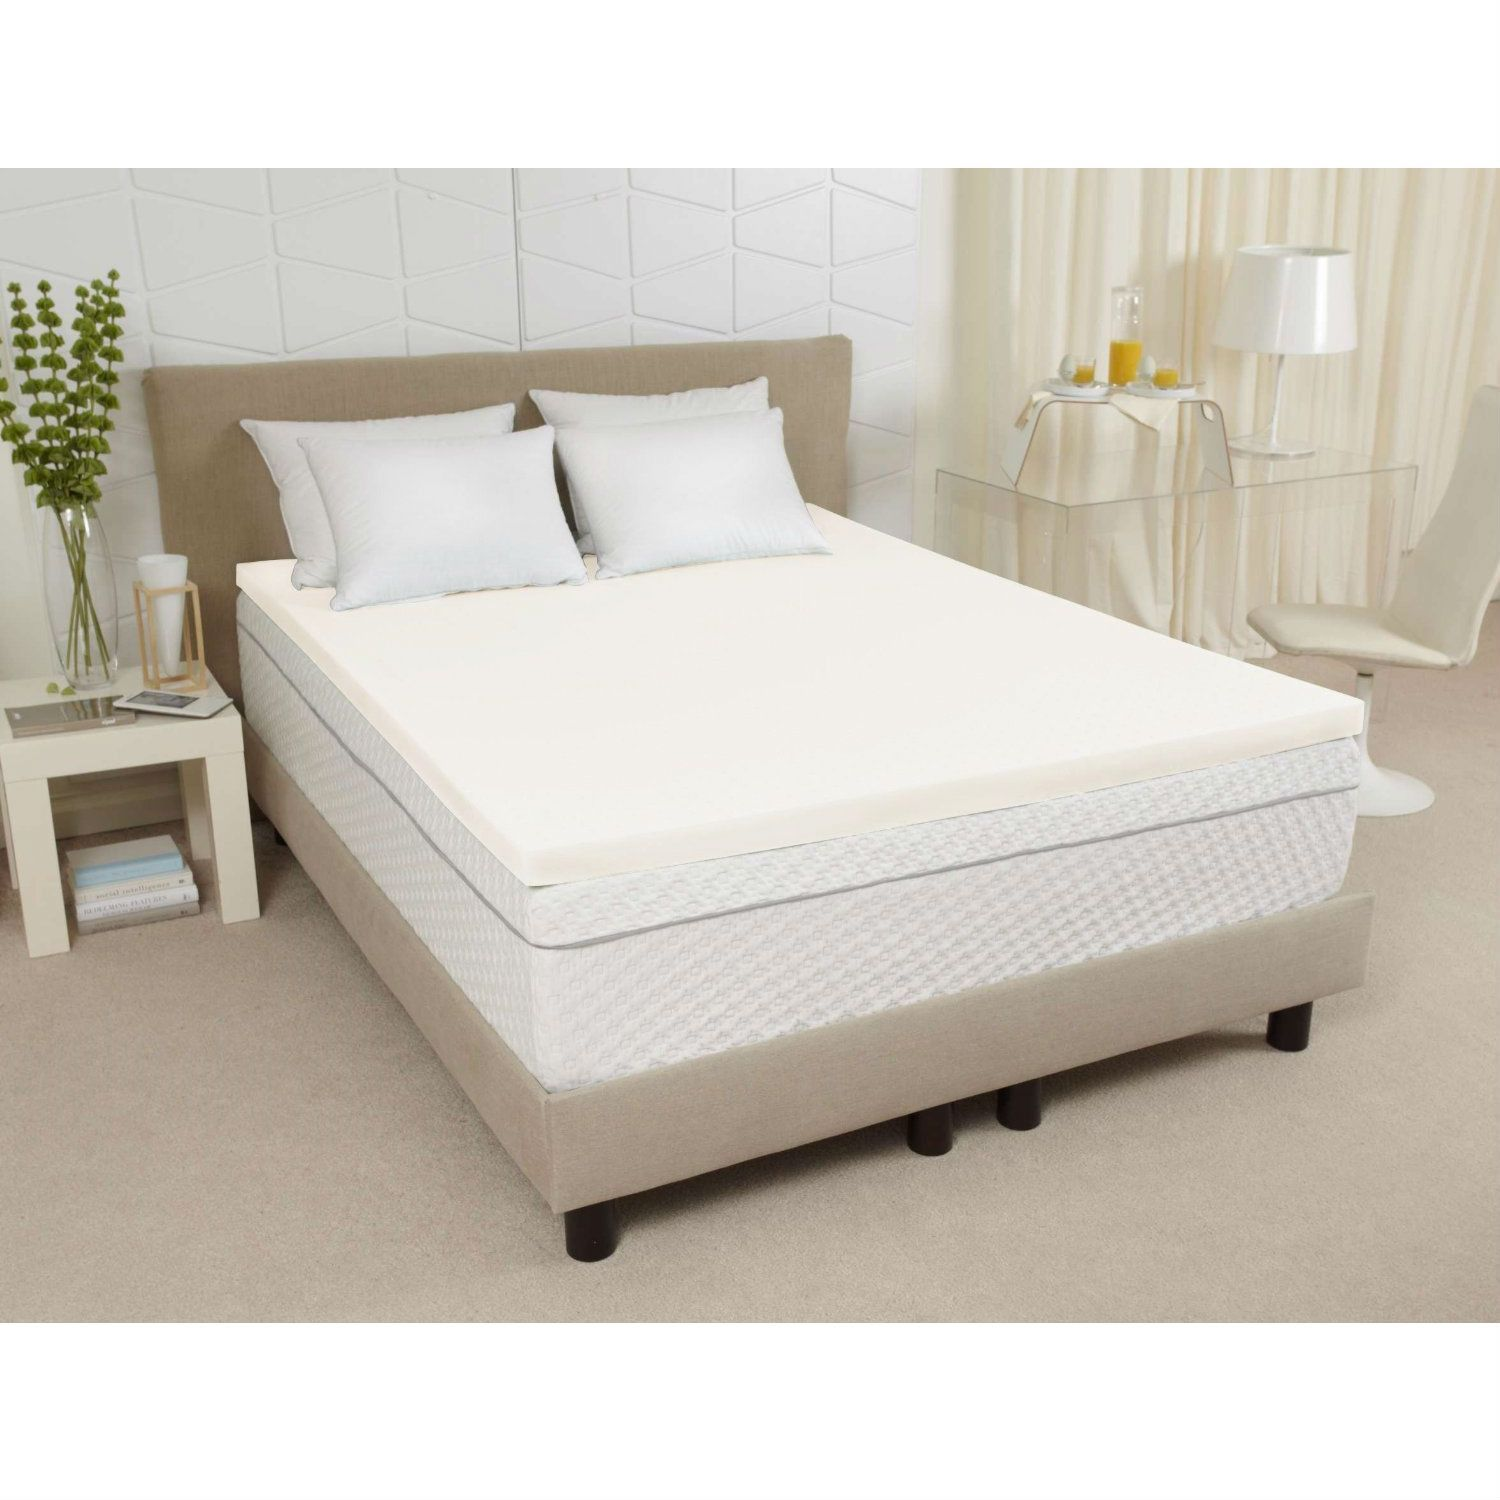 Http Www Cadecga Com Category Xl Twin Memory Foam Topper Twin Xl Size 3 Inch Thick Ventilated Memory Foam Memory Foam Mattress Topper Mattress Topper Reviews